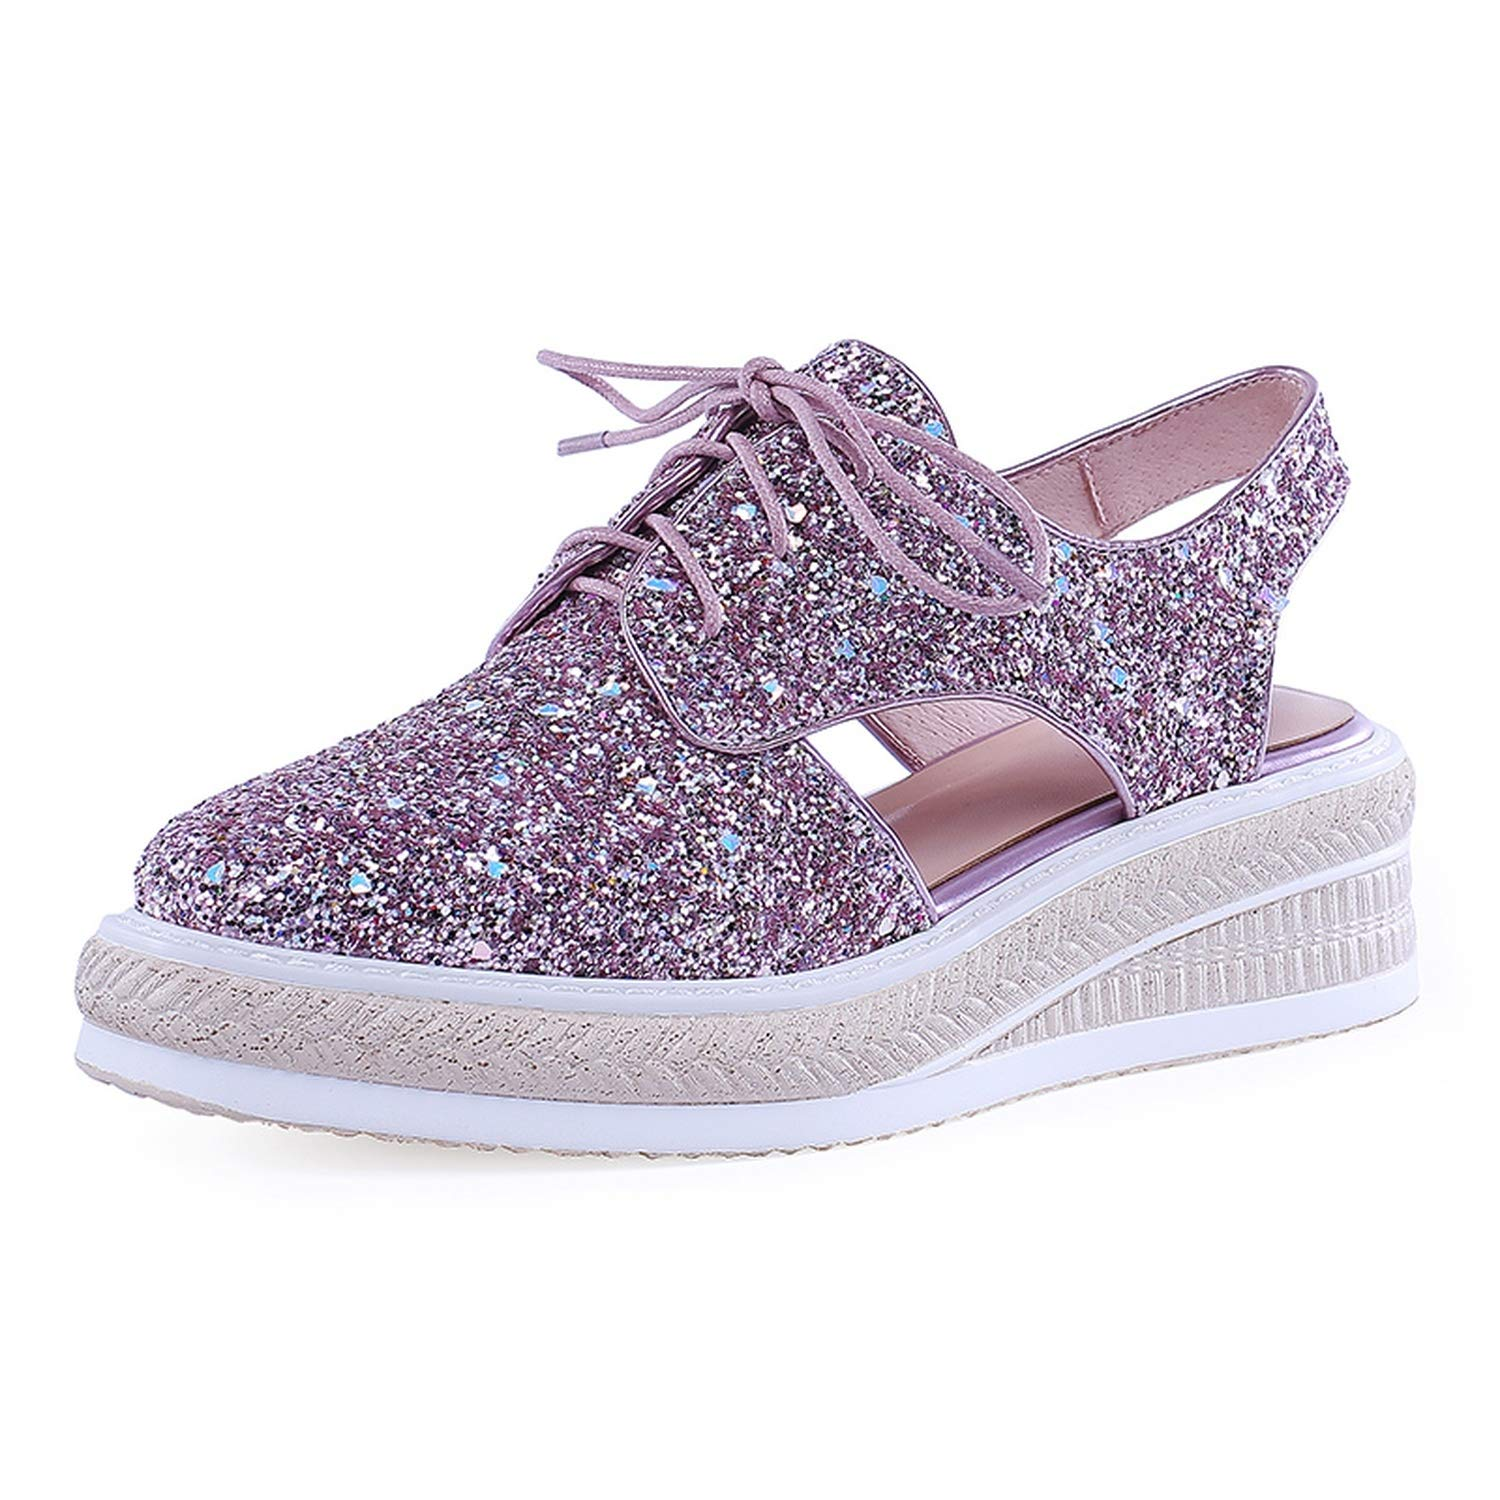 Luxury Bling Lace Up Flat Platform Shoes Woman Casual Party Office Summer Sandals